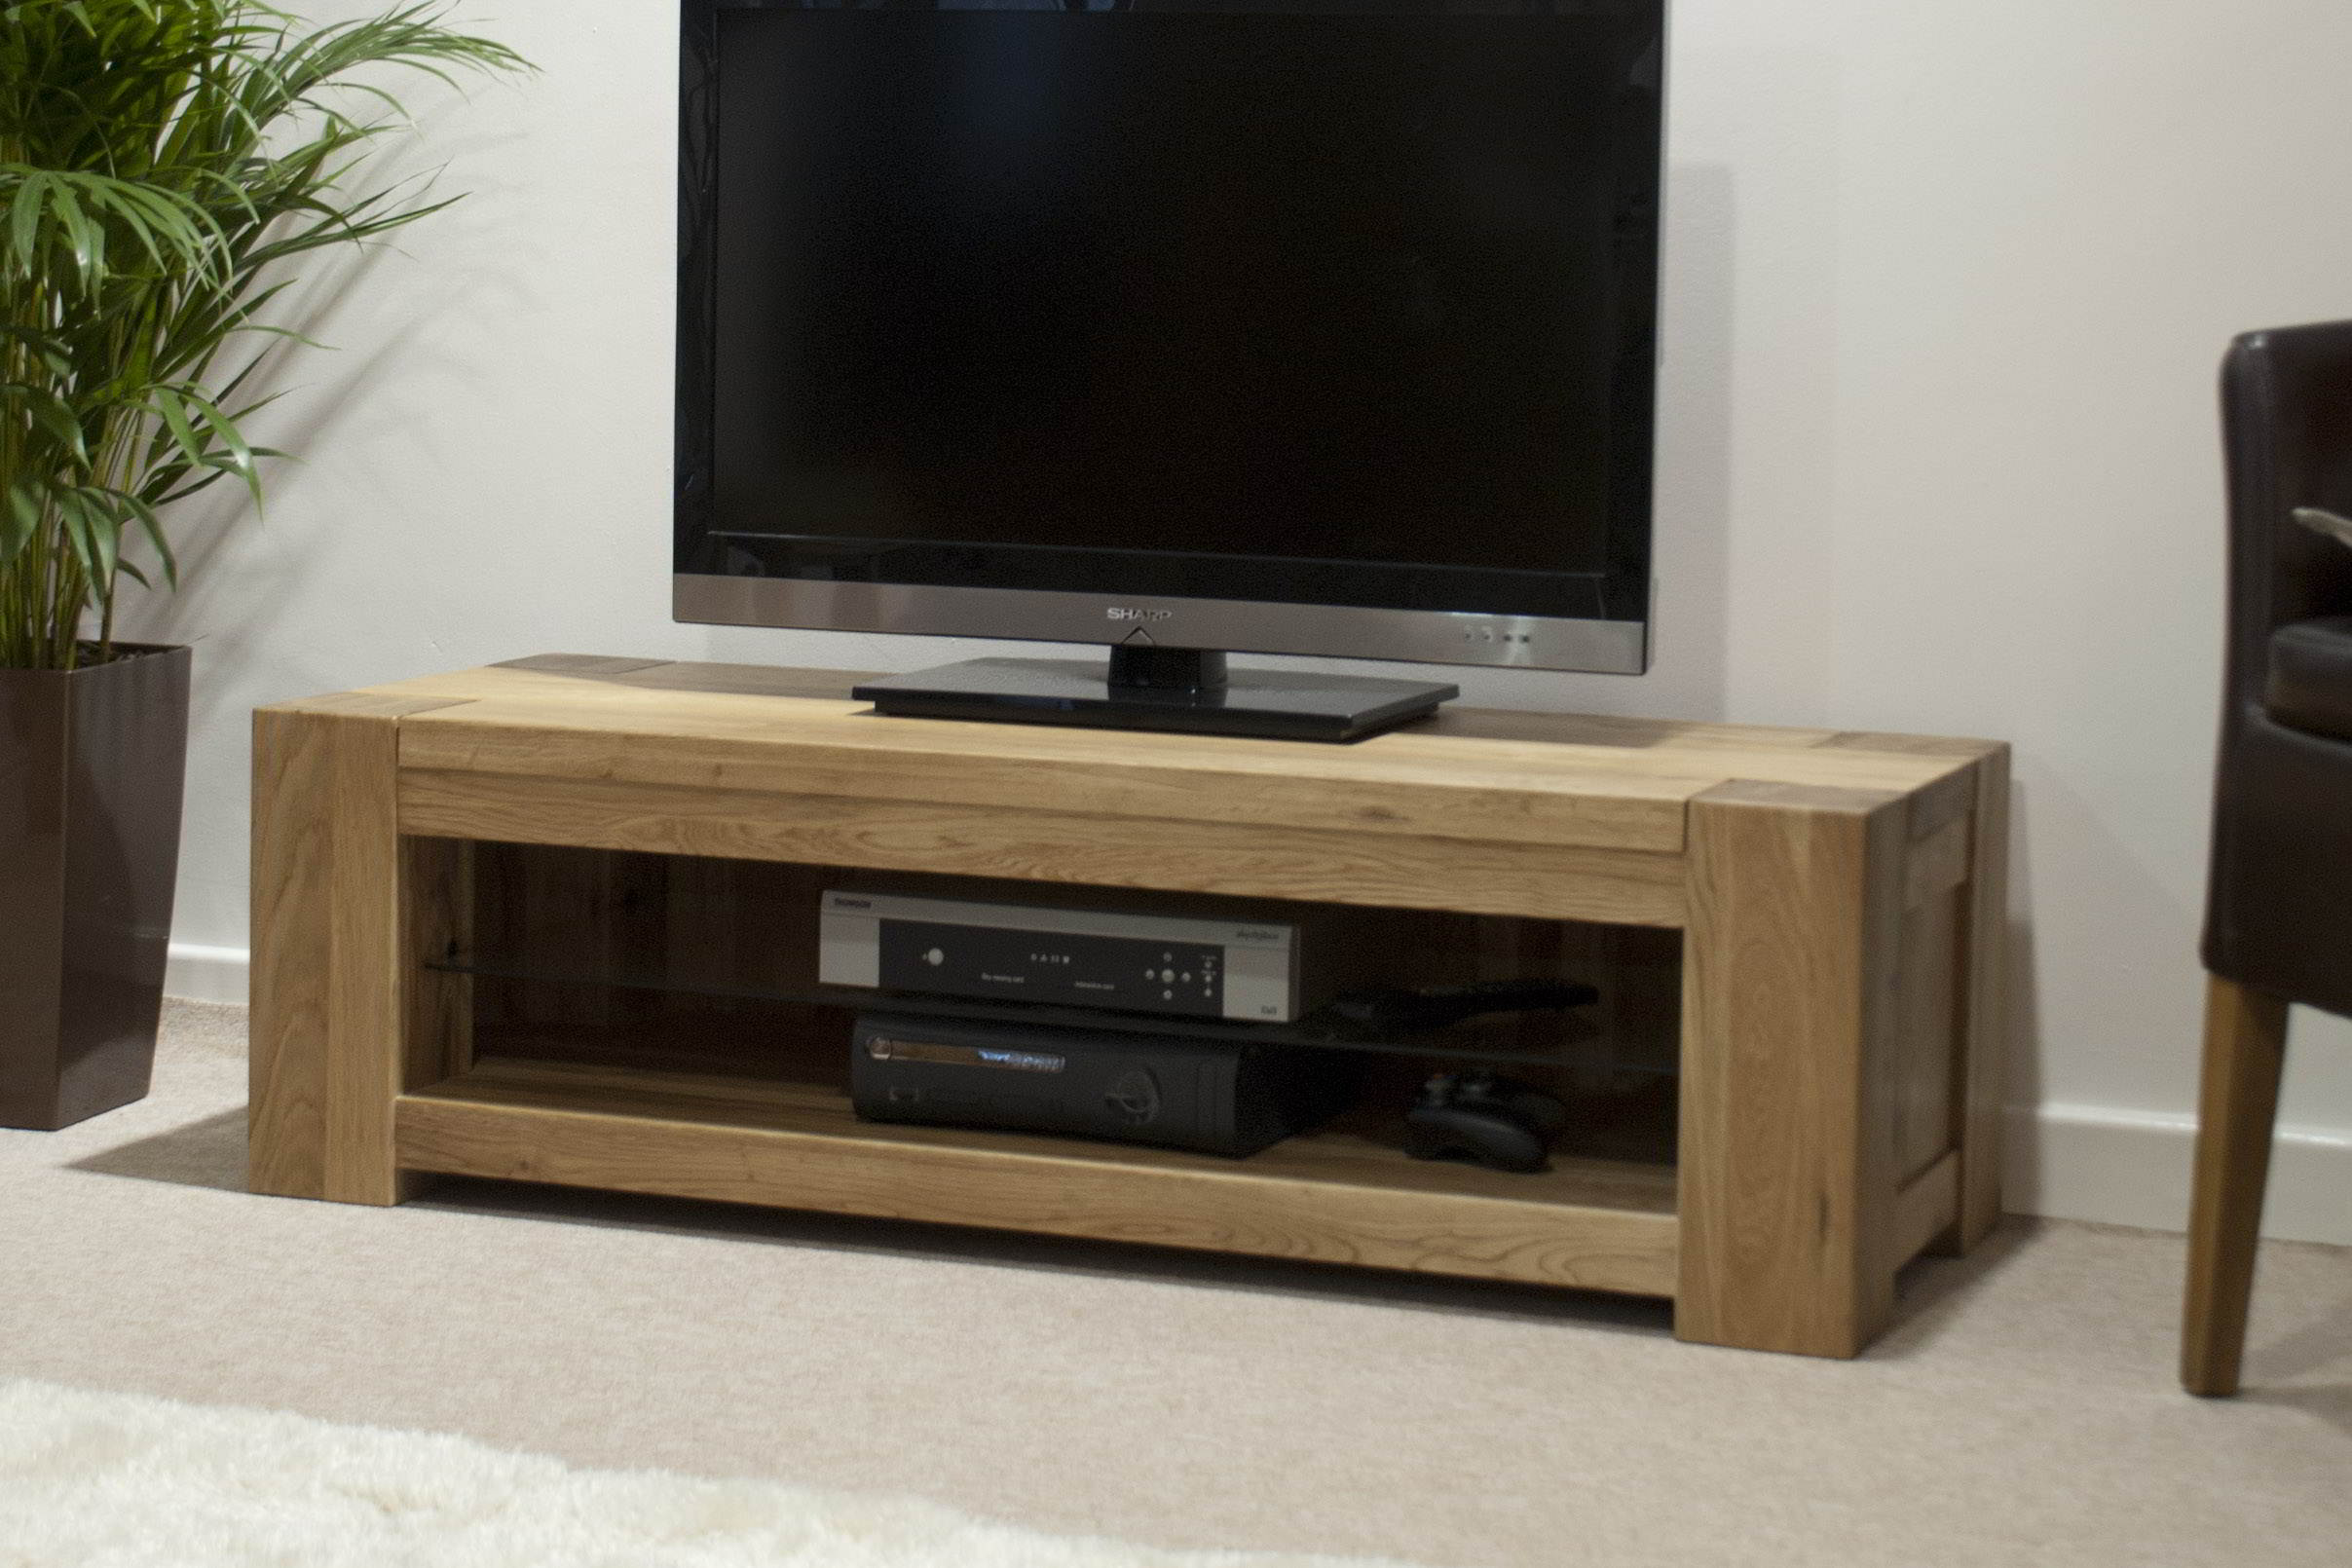 Padova solid oak furniture plasma television cabinet stand for Tv furniture